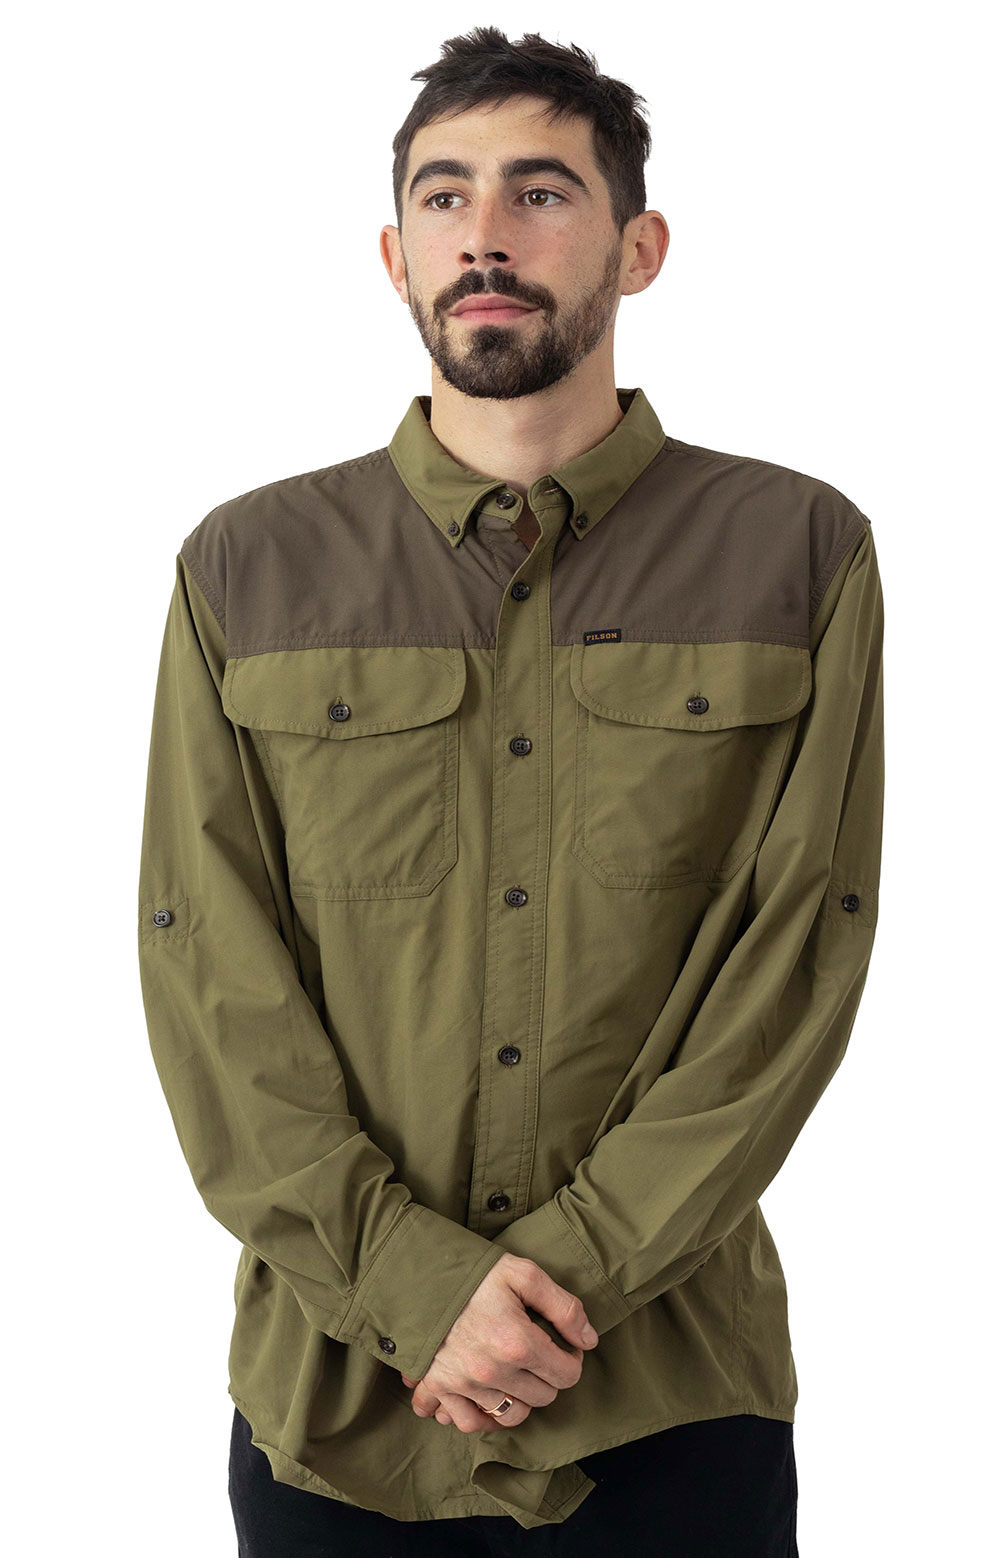 Sportsman's Button-Up Shirt - Olived Drab 2